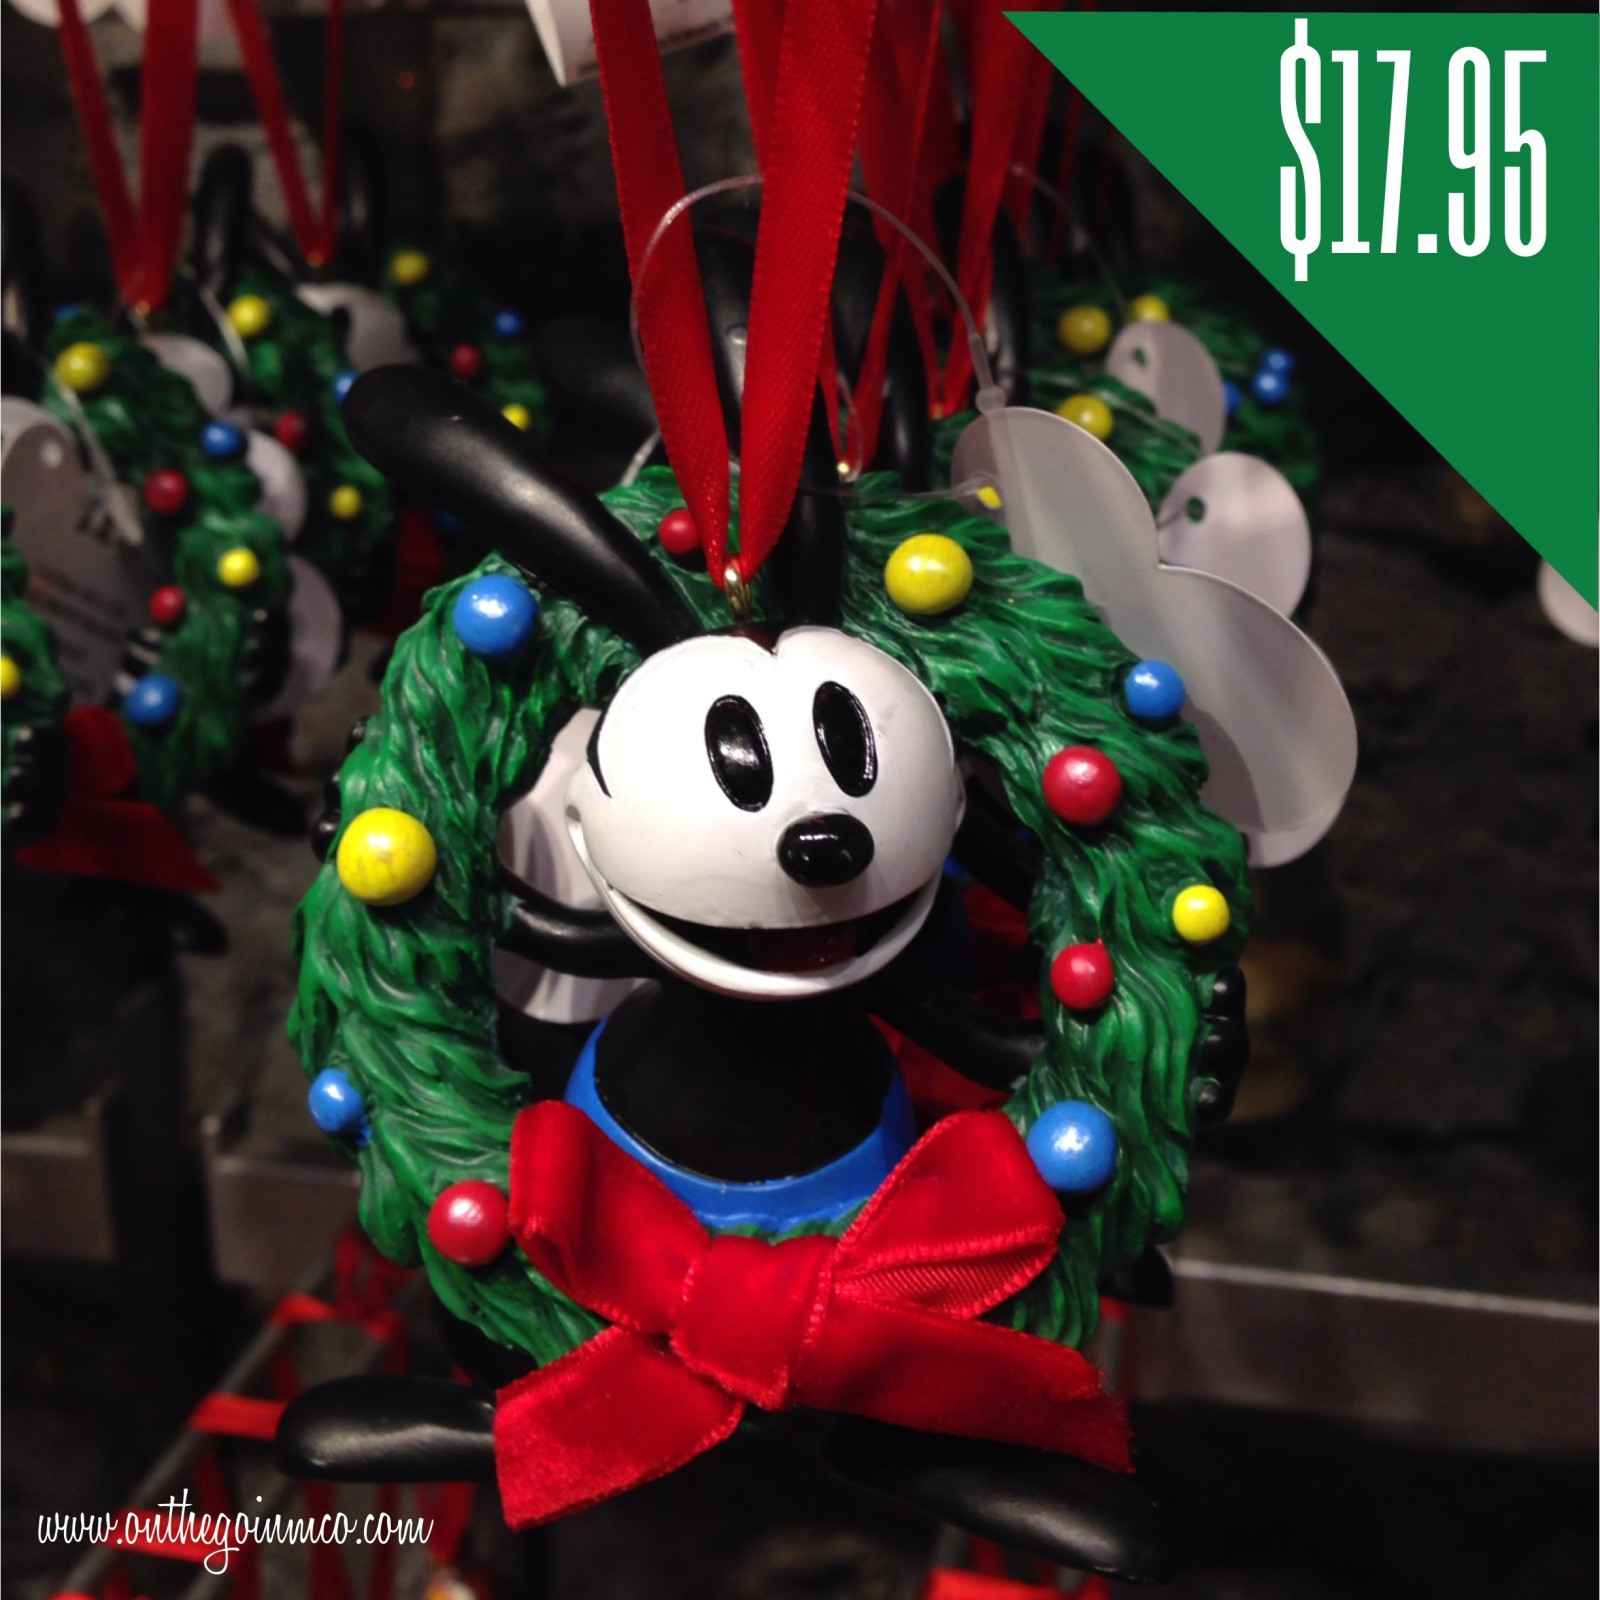 Disney Character Christmas Ornaments the Go in MCO